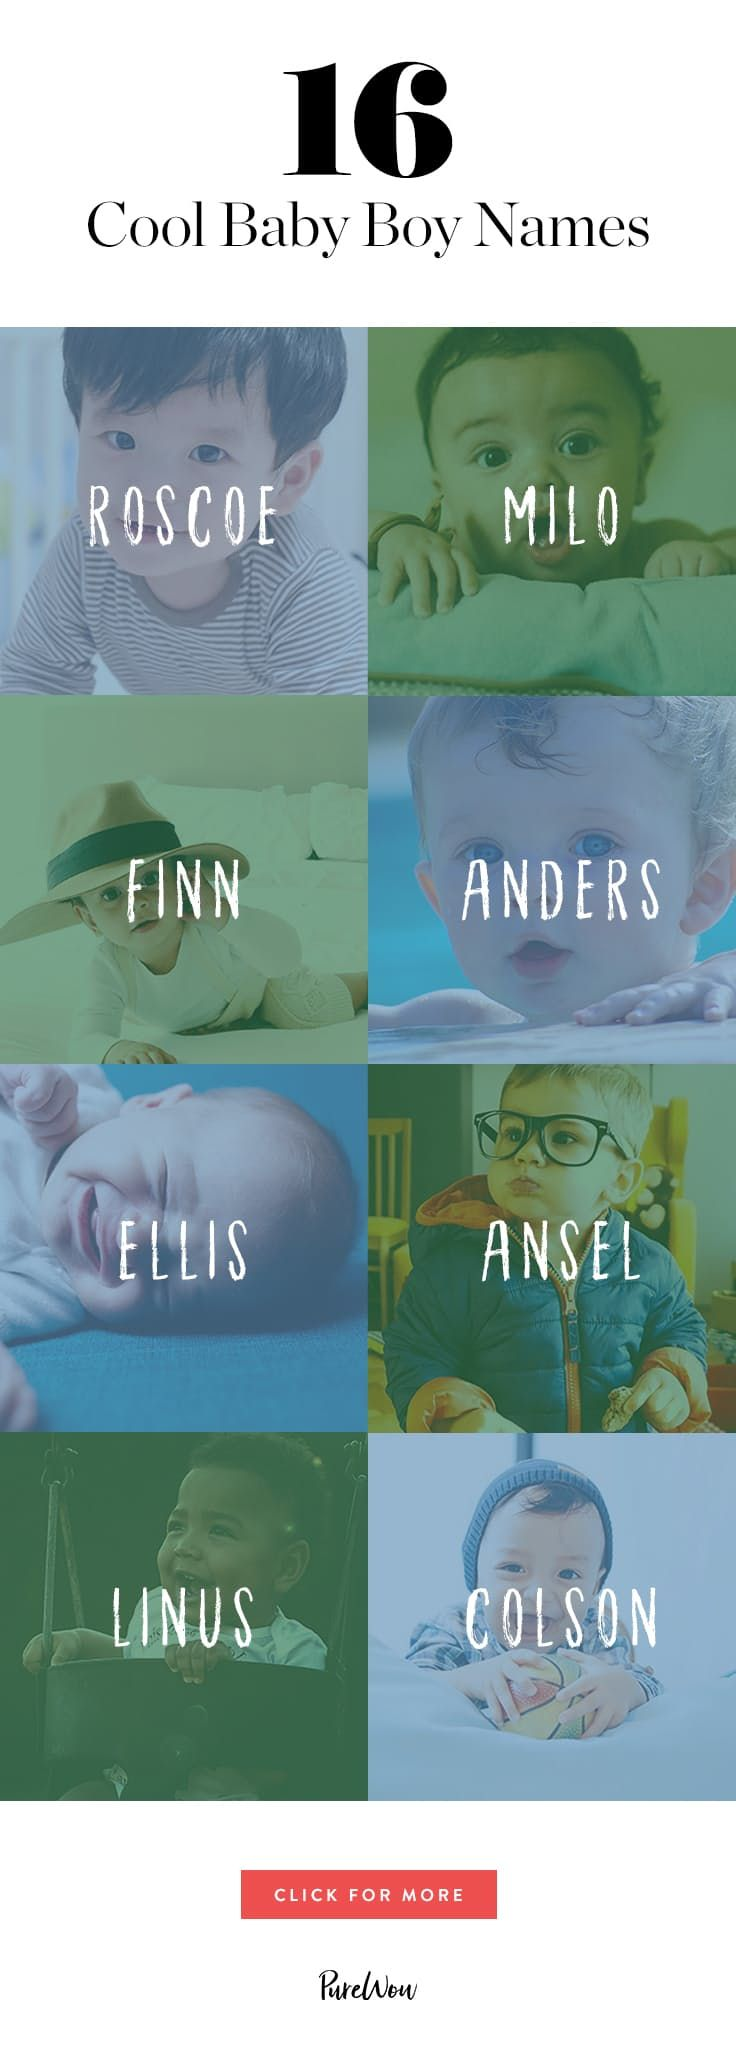 16 Cool Baby Boy Names You Haven